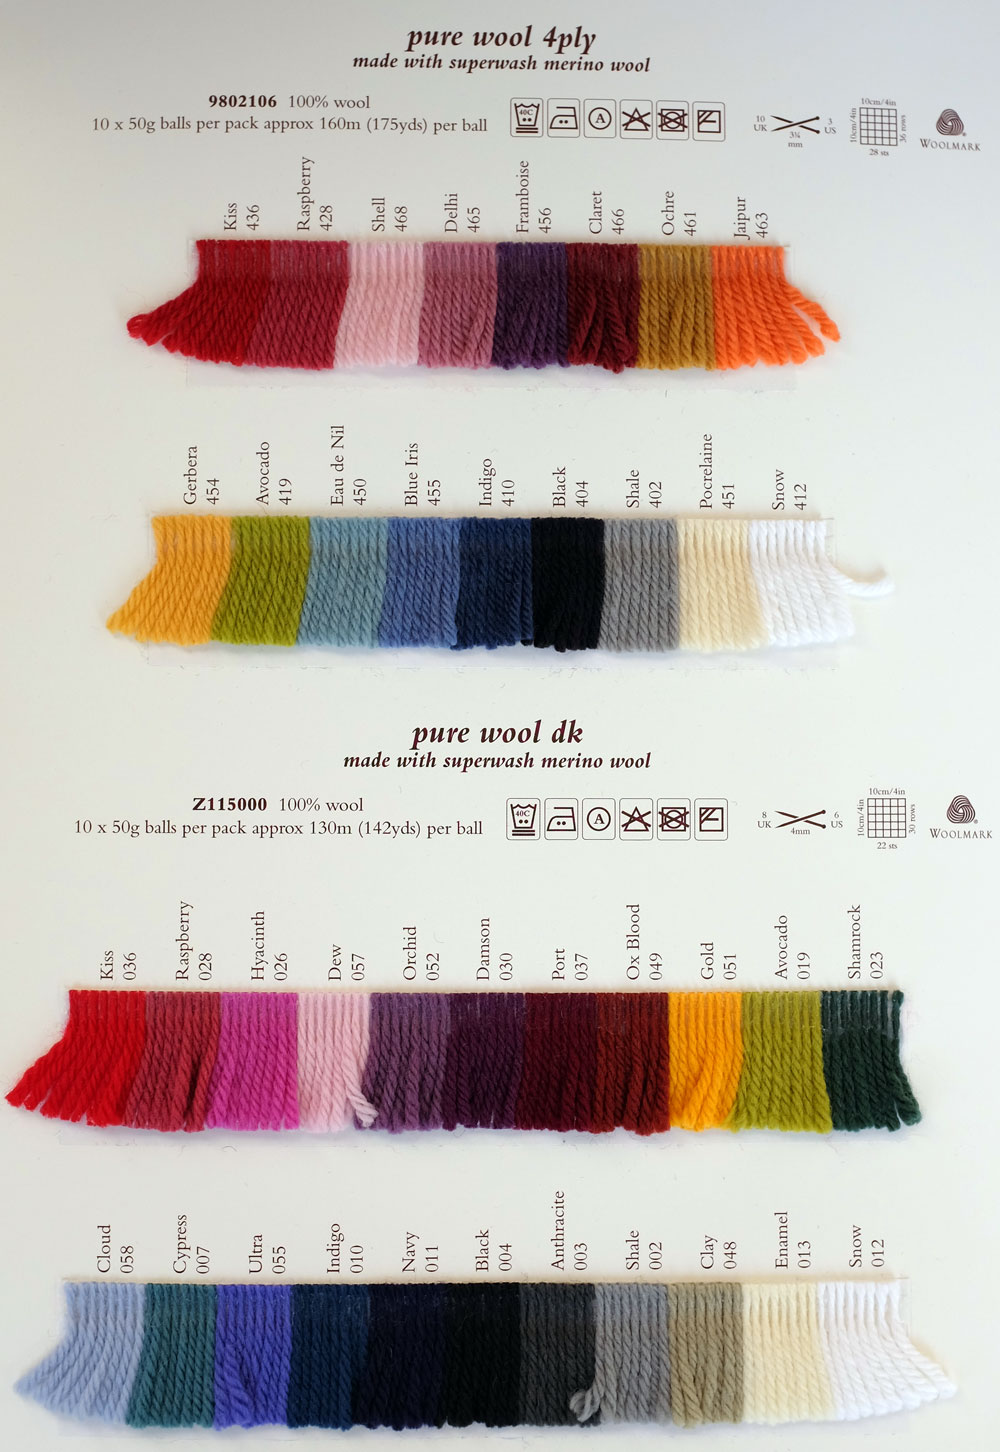 Rowan pure wool dk rowan yarns ryc sirdar sublime english yarns shade card see shade card nvjuhfo Choice Image